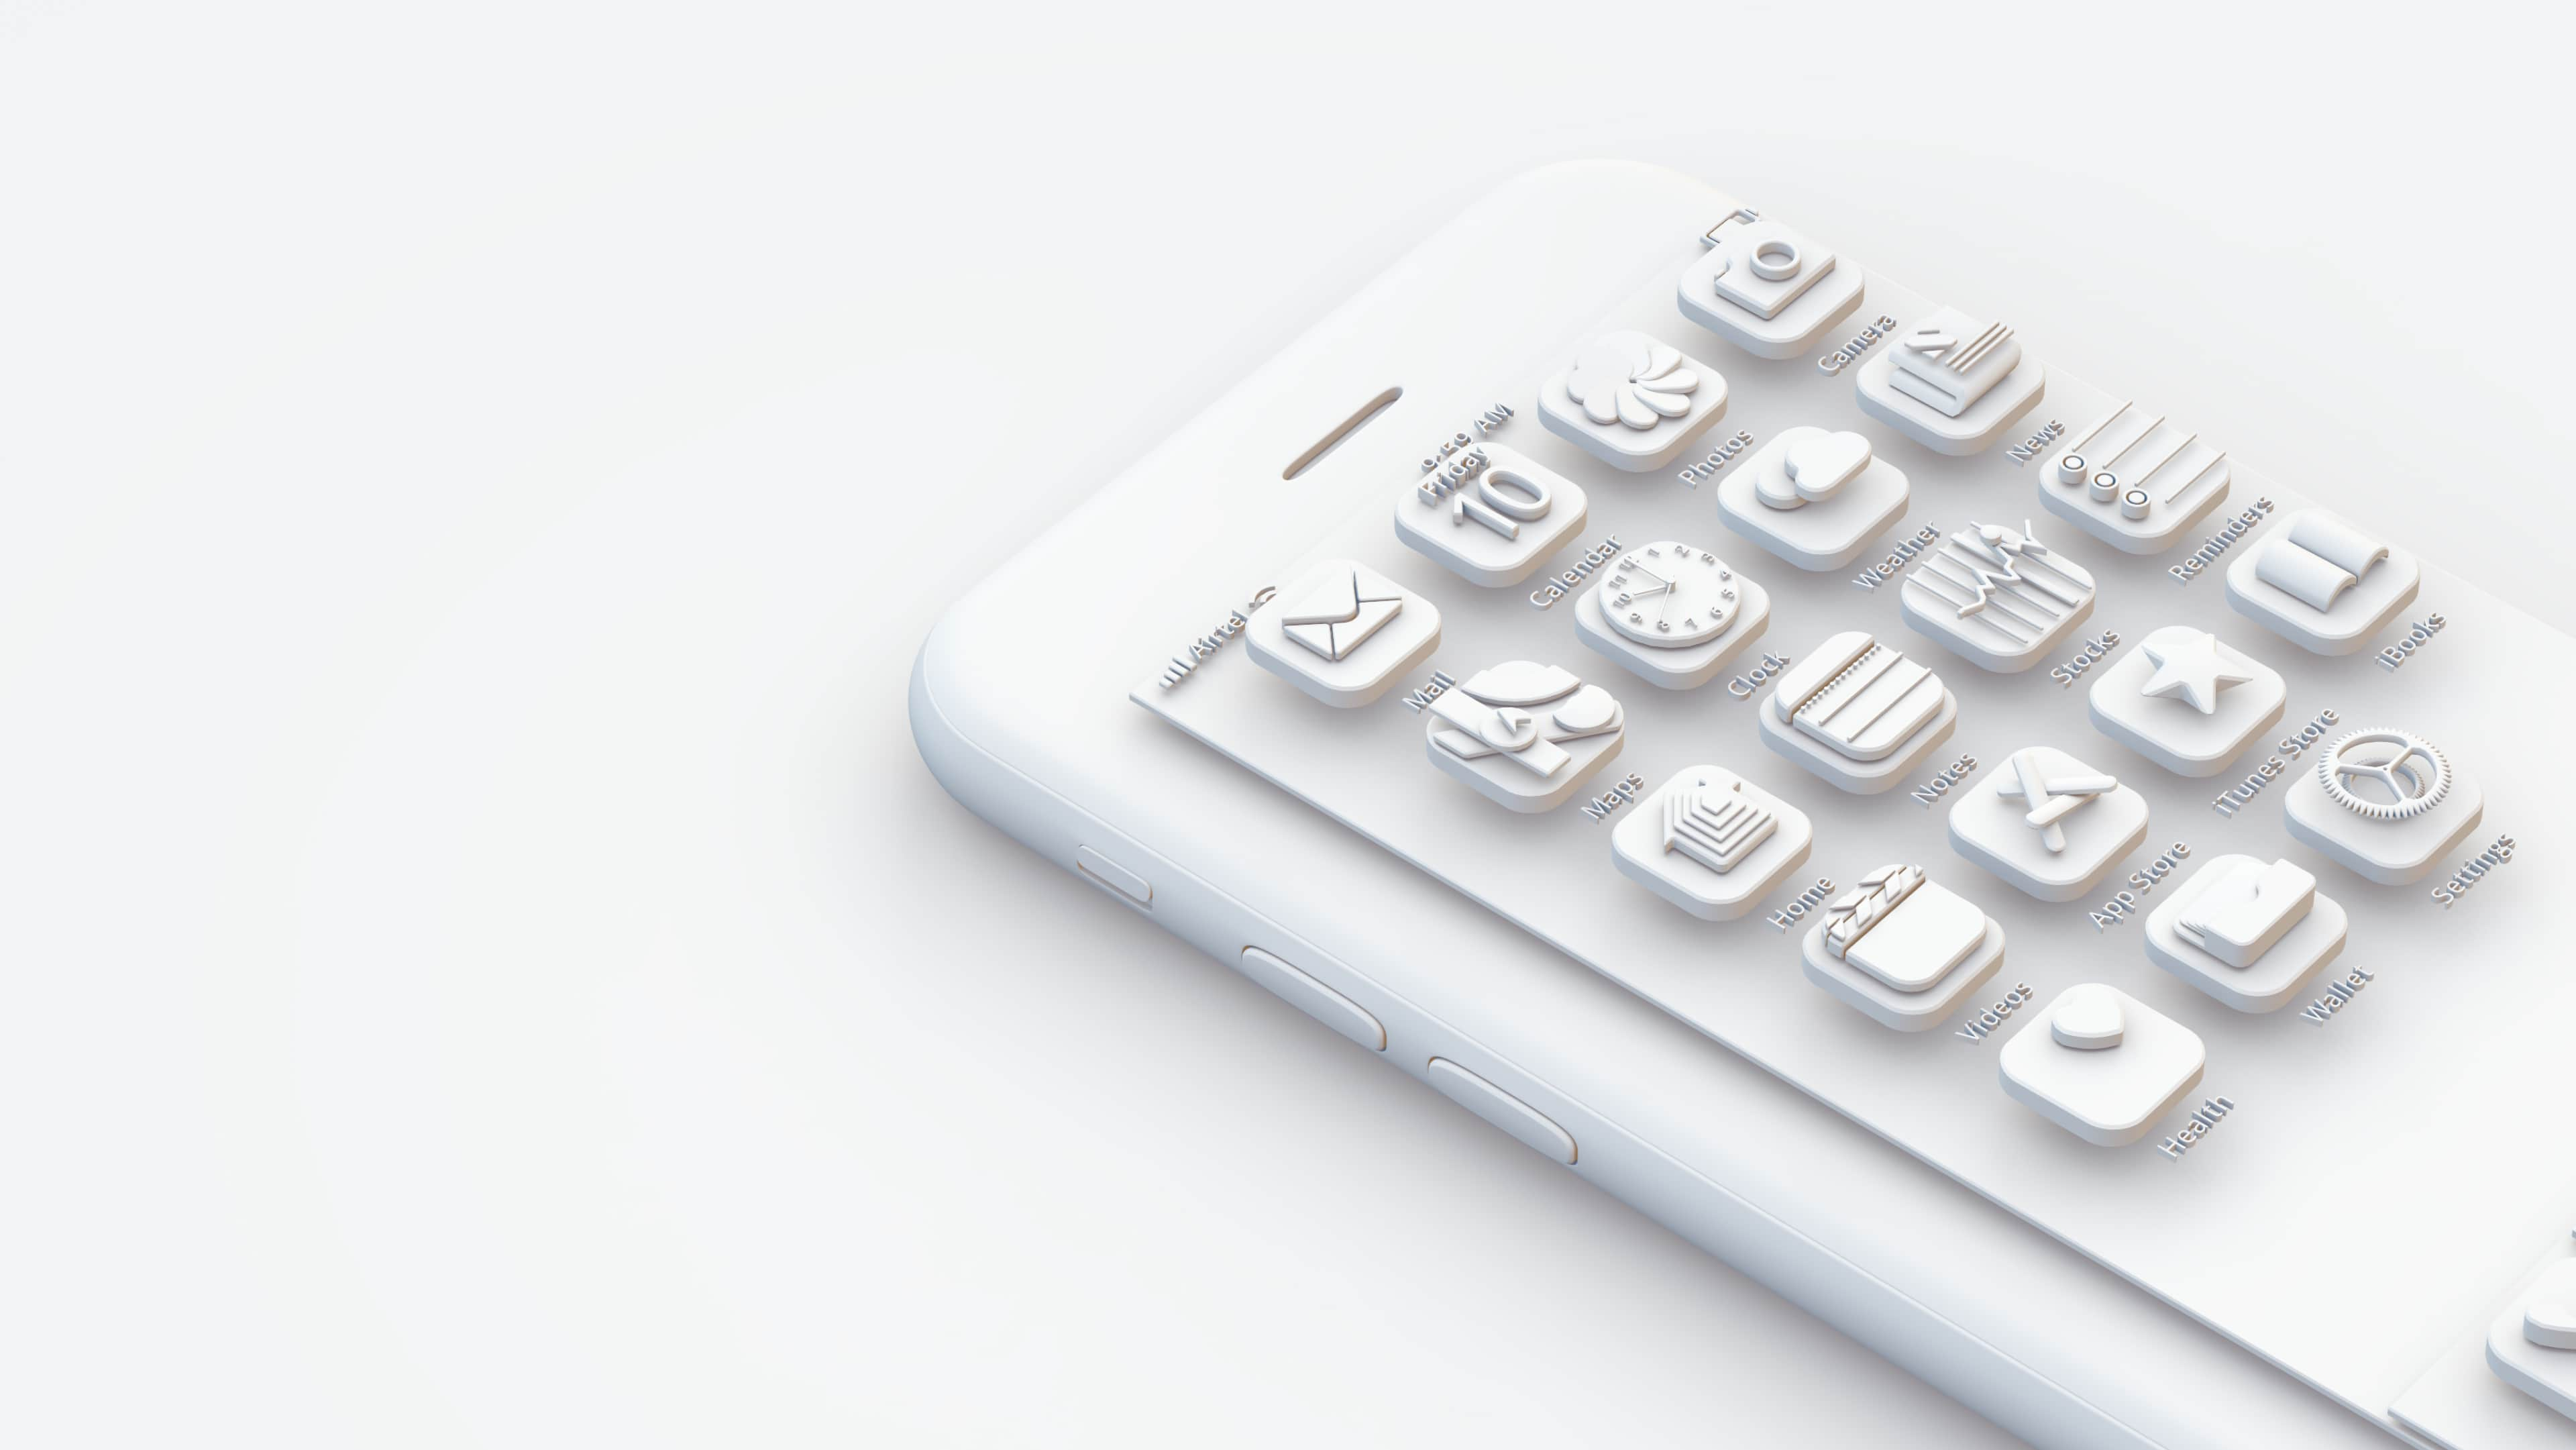 vectary-3D-icons-design-ios-app-monochrome-white-iphone-blog-how-to-rightSide